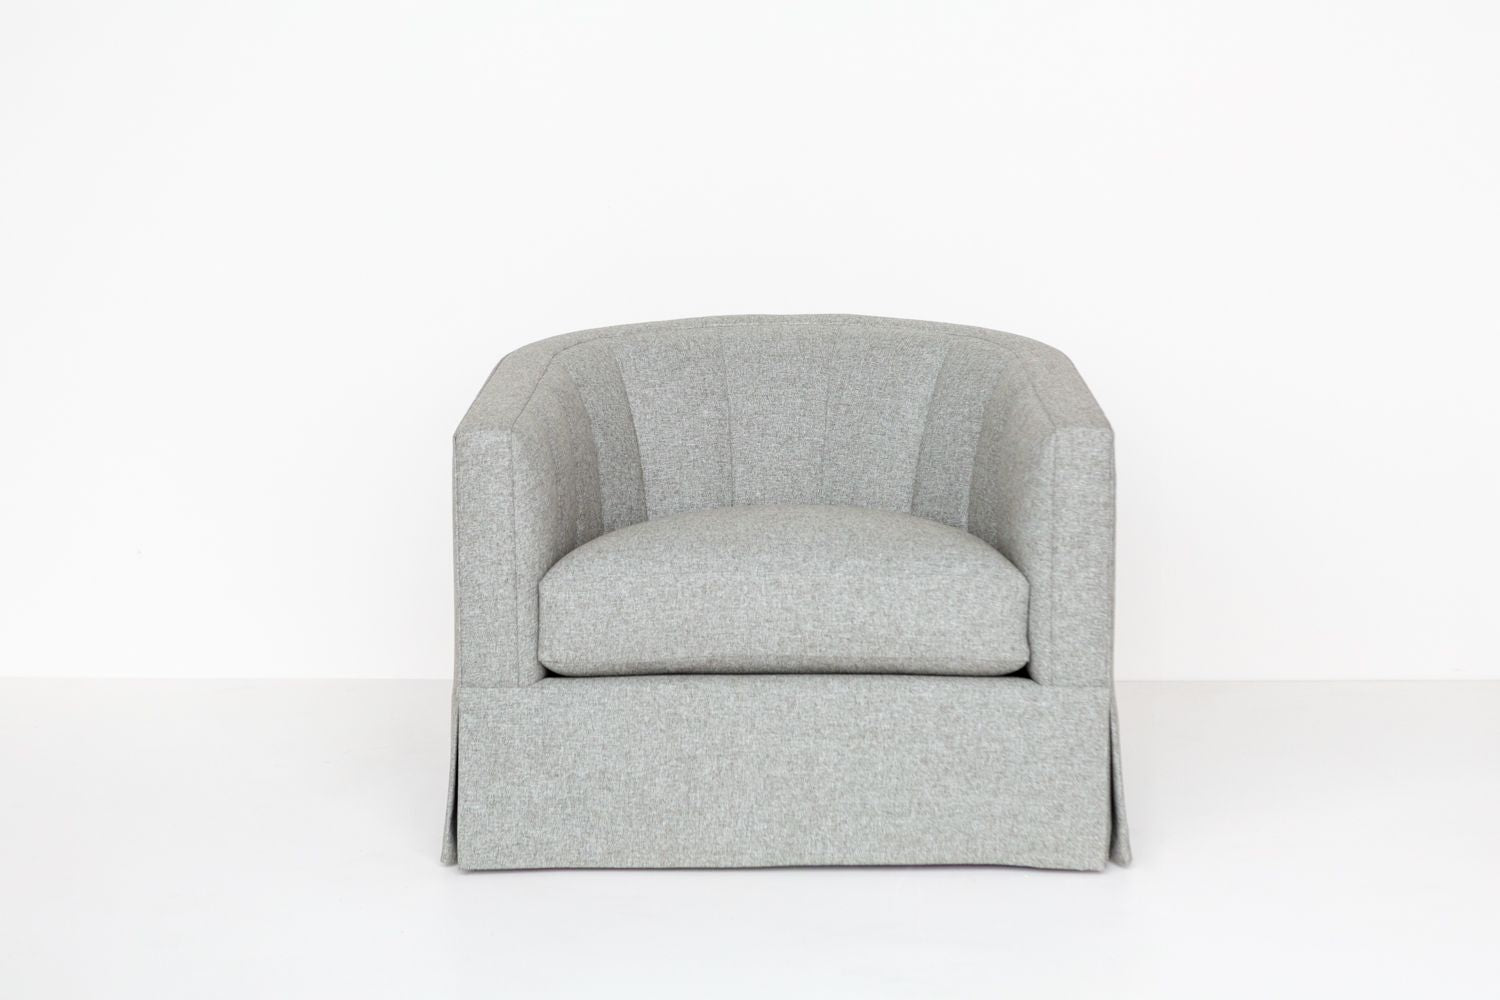 Product shot of the ffabb home Coco Swivel chair